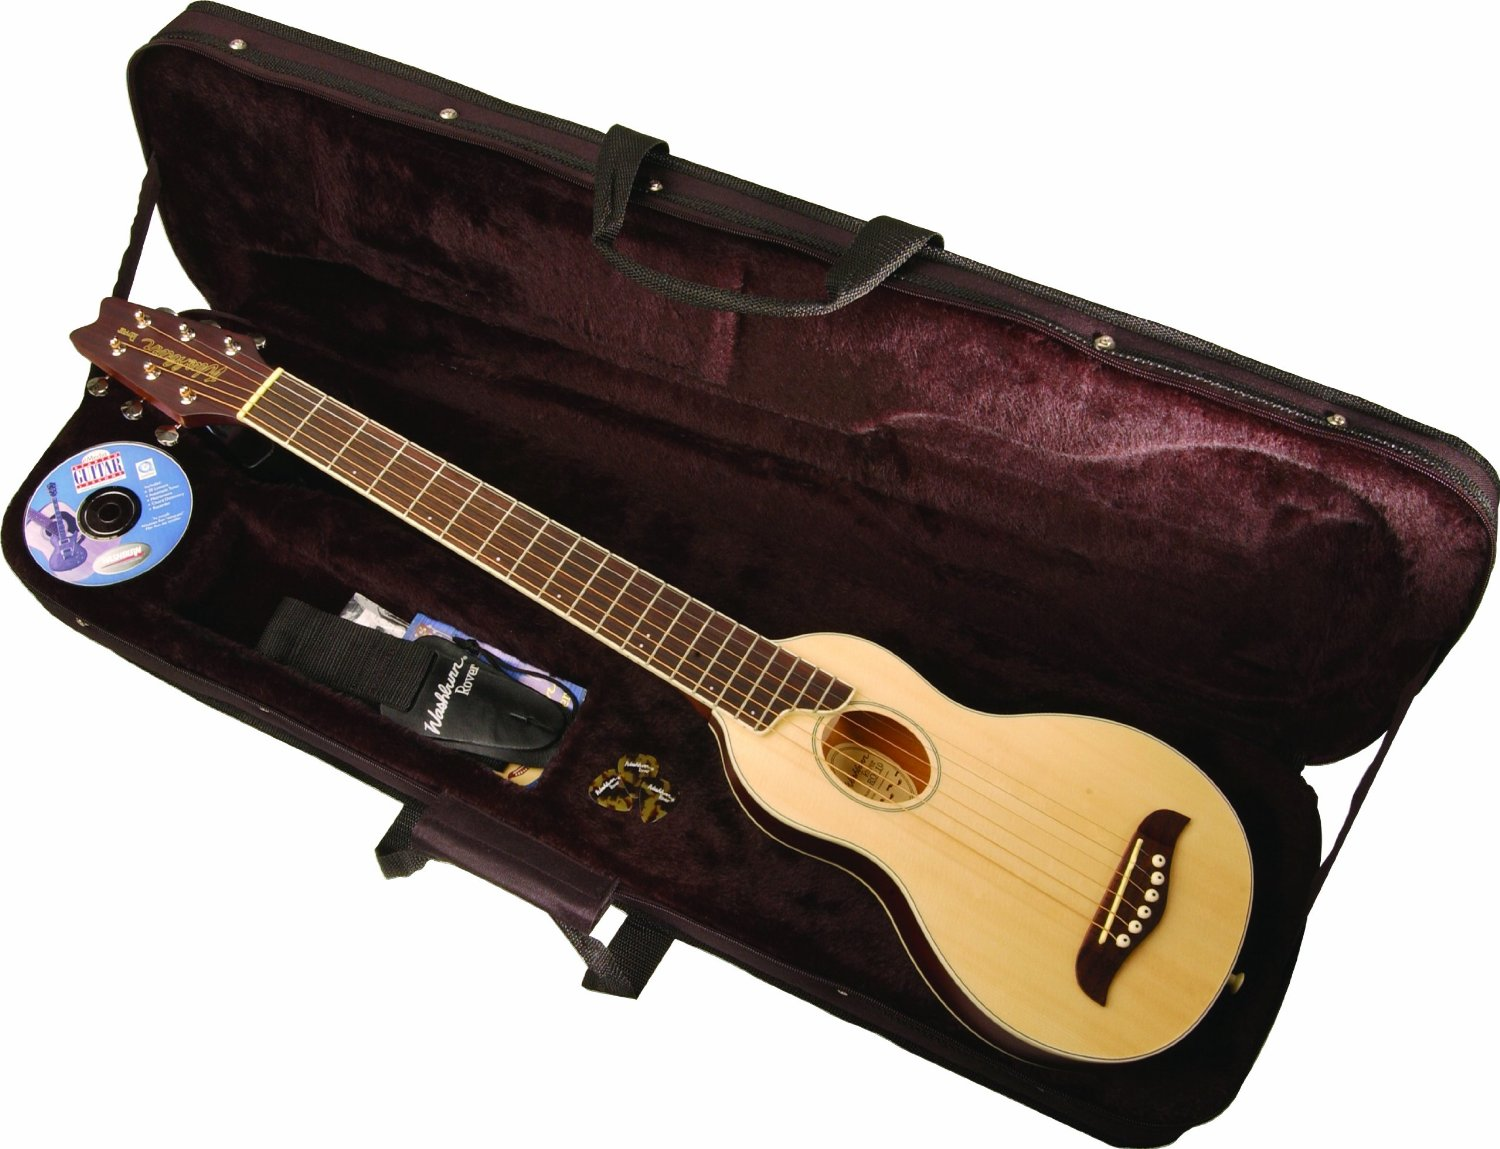 washburn ro10 rover steel string travel acoustic guitar package w case natural ebay. Black Bedroom Furniture Sets. Home Design Ideas